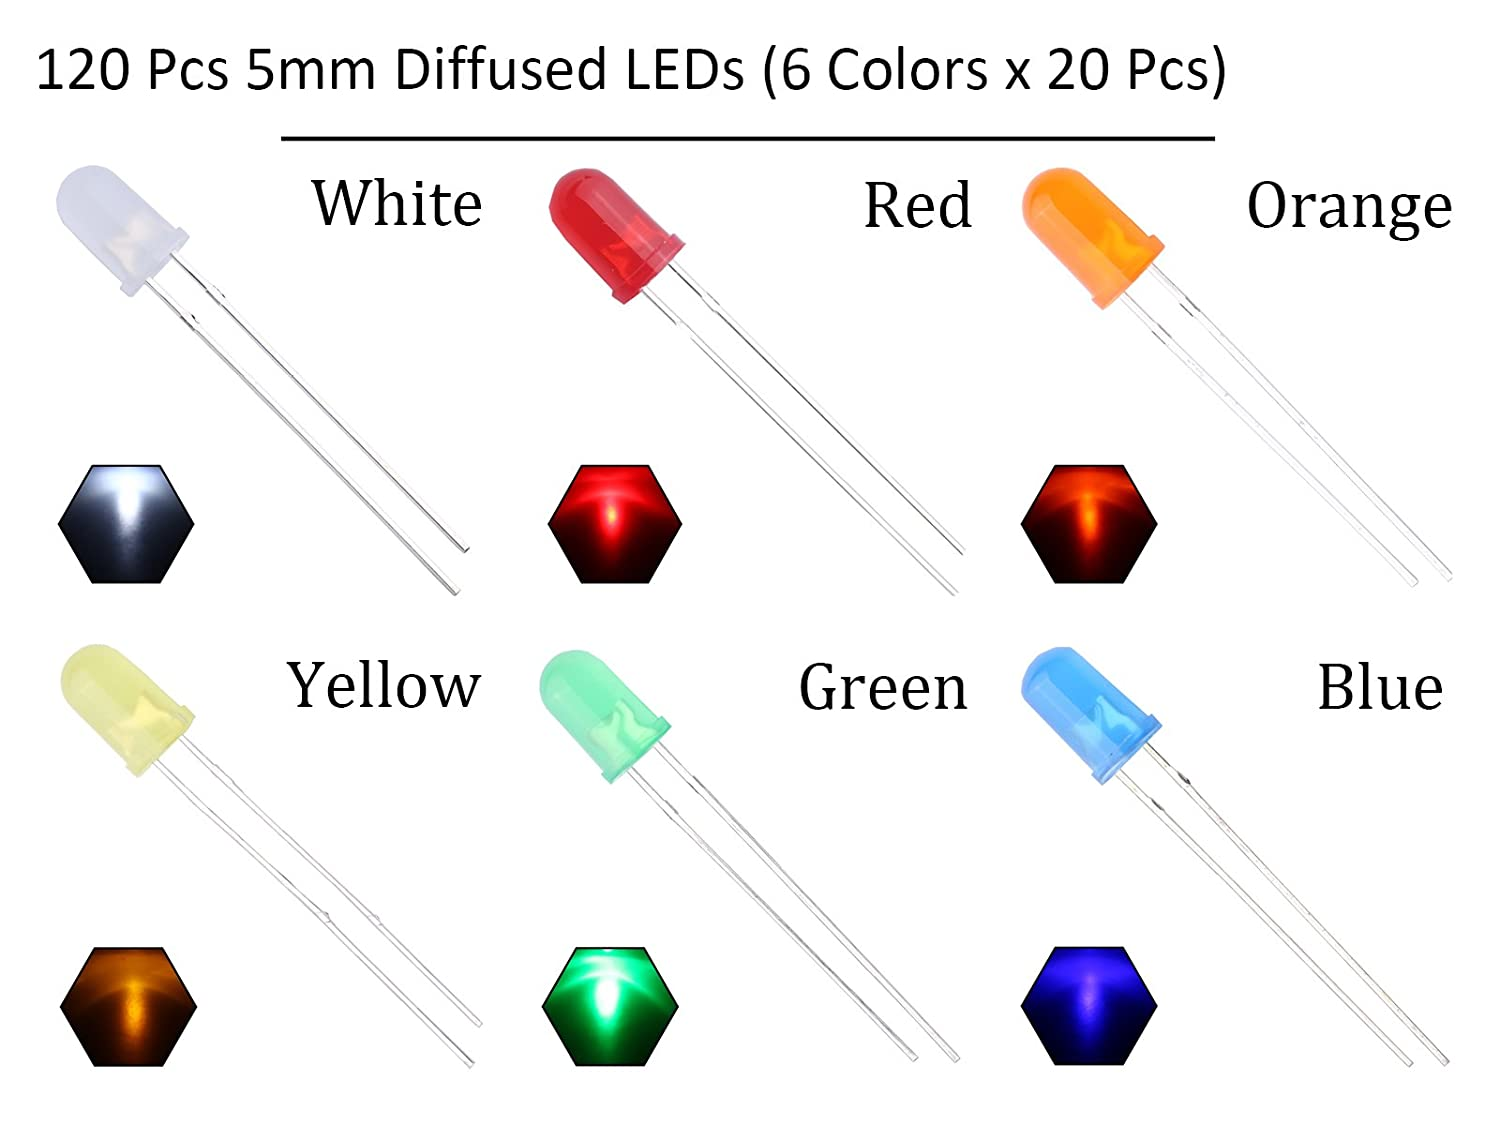 Included//Light Emitting Diodes Red Green Blue Multicolor EDGELEC 100pcs 5mm RGB Tri-Color 4Pin LED Diodes Common Cathode Diffused Round Top 29mm Long Feet +300pcs Resistors for DC 6-13V